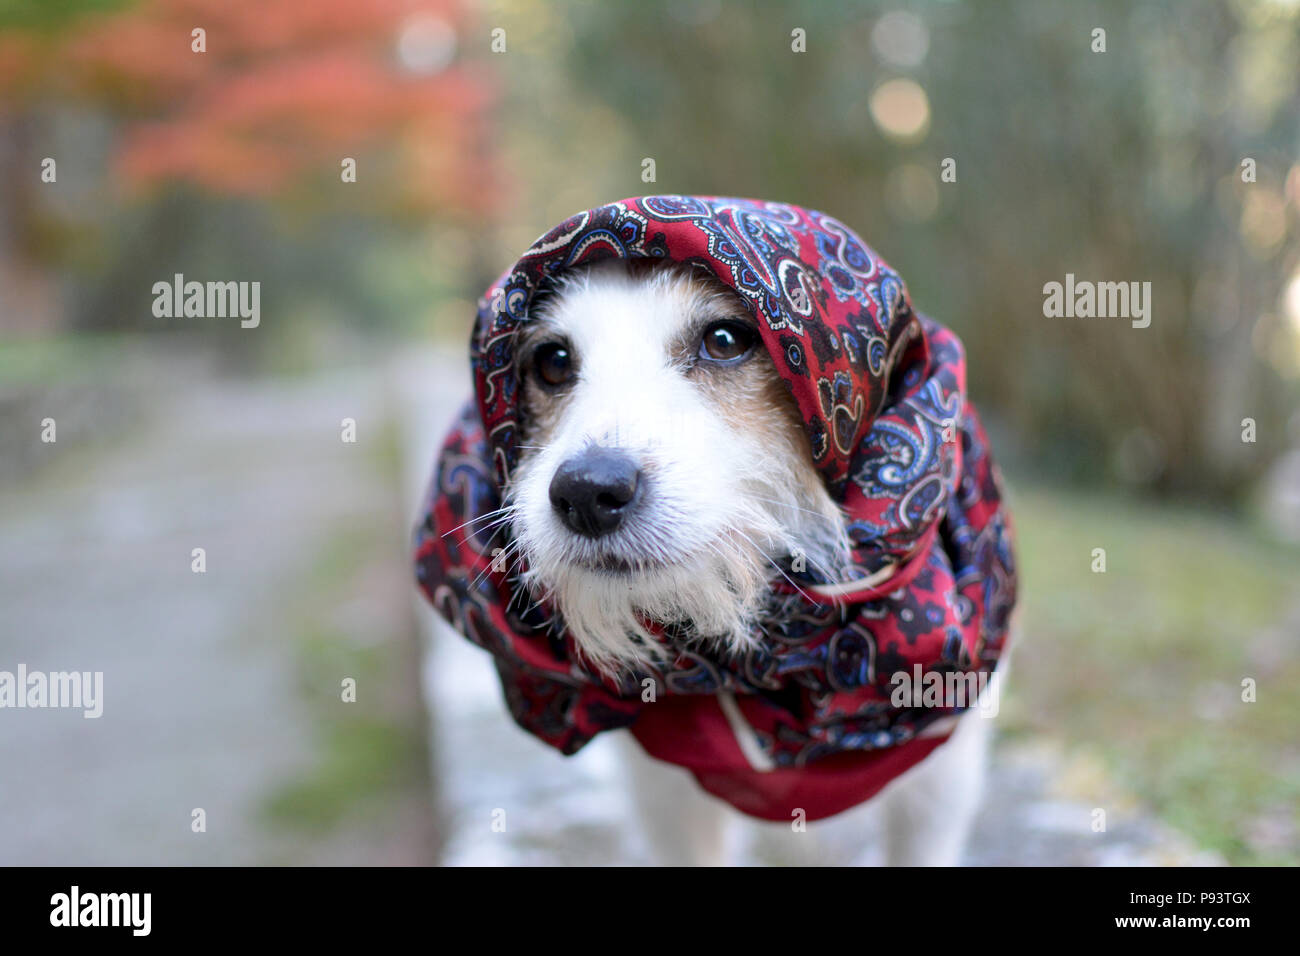 FASHIONABLE JACK RUSSELL DOG WEARING A RED HANDKERCHIEF ON HIS HEAD